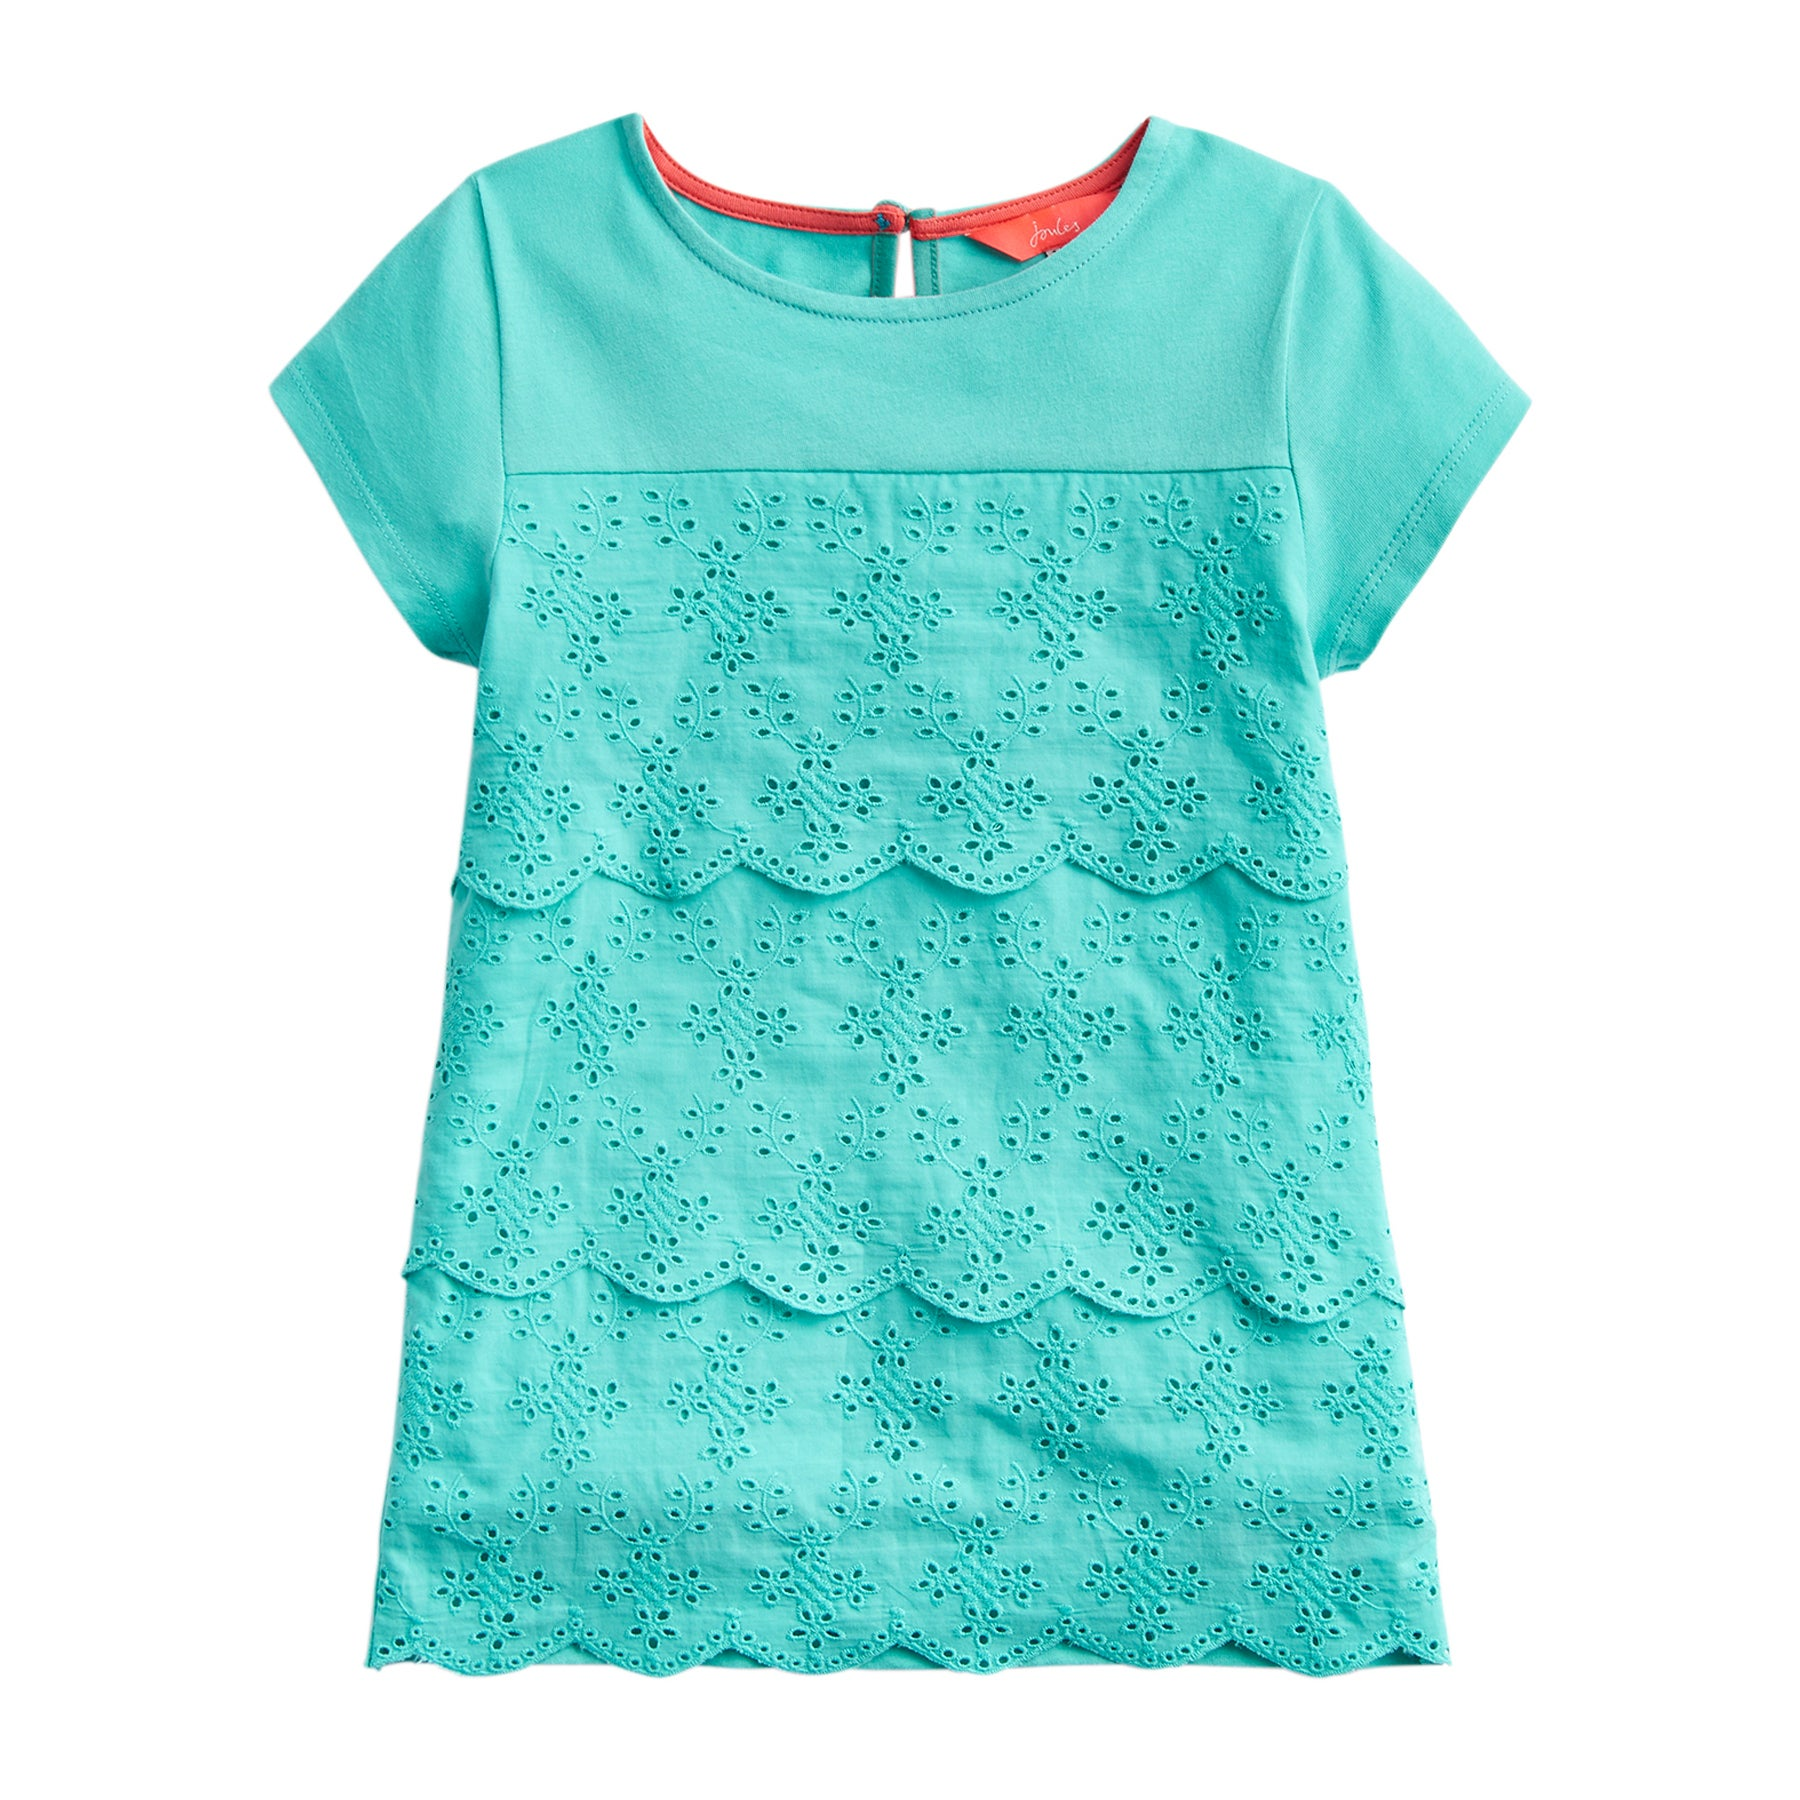 Joules Brodie Girls Top - Turquoise